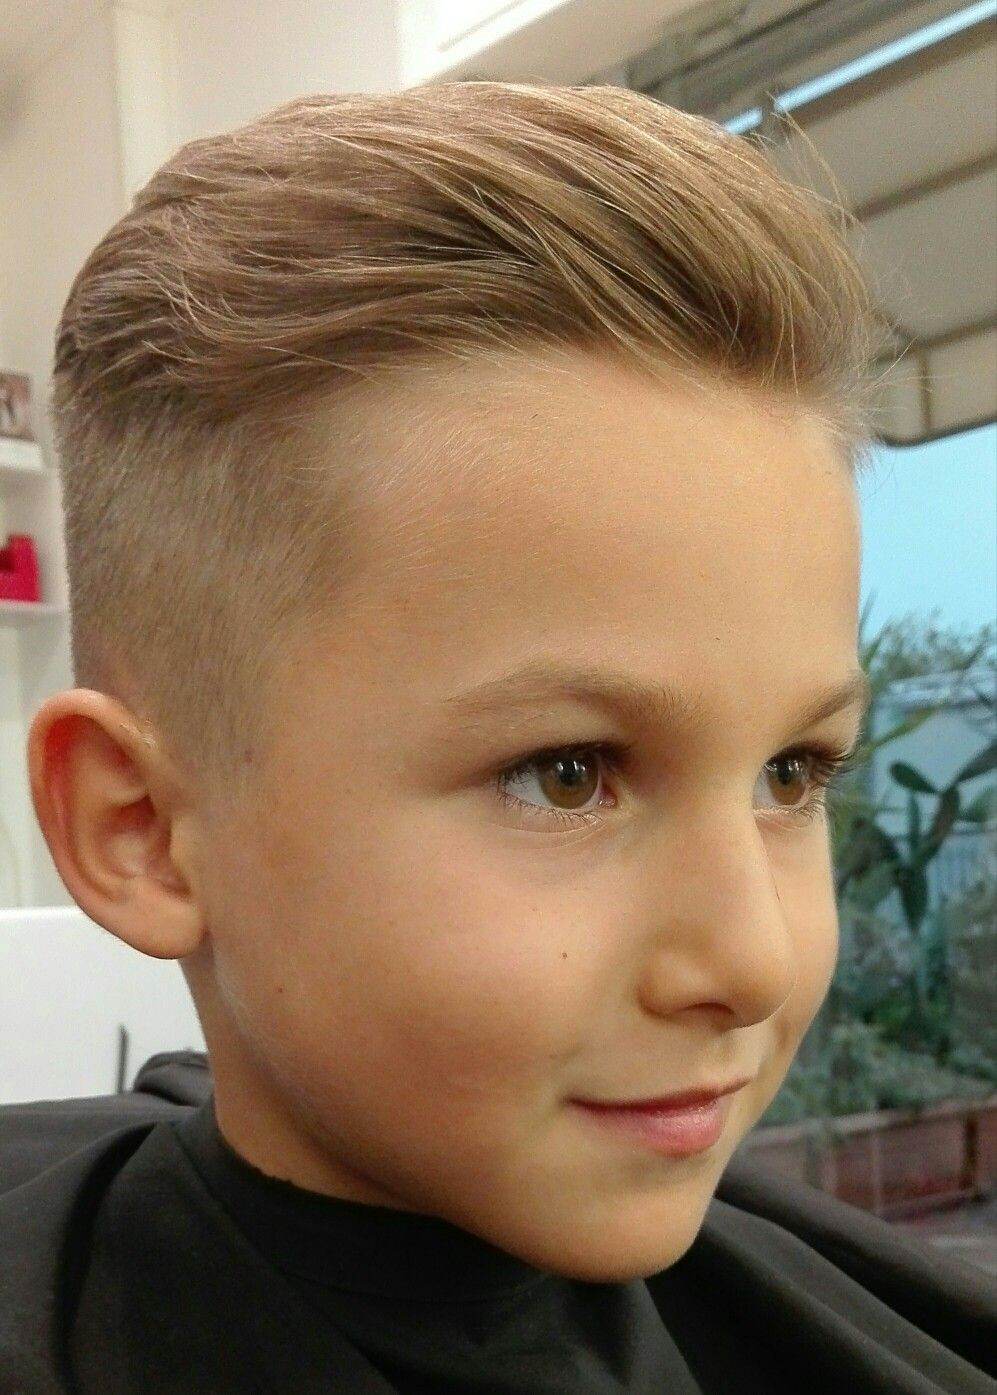 Best ideas about Boys Hair Cut 2019 . Save or Pin Pin by Trish Rogers on Hair in 2019 Now.